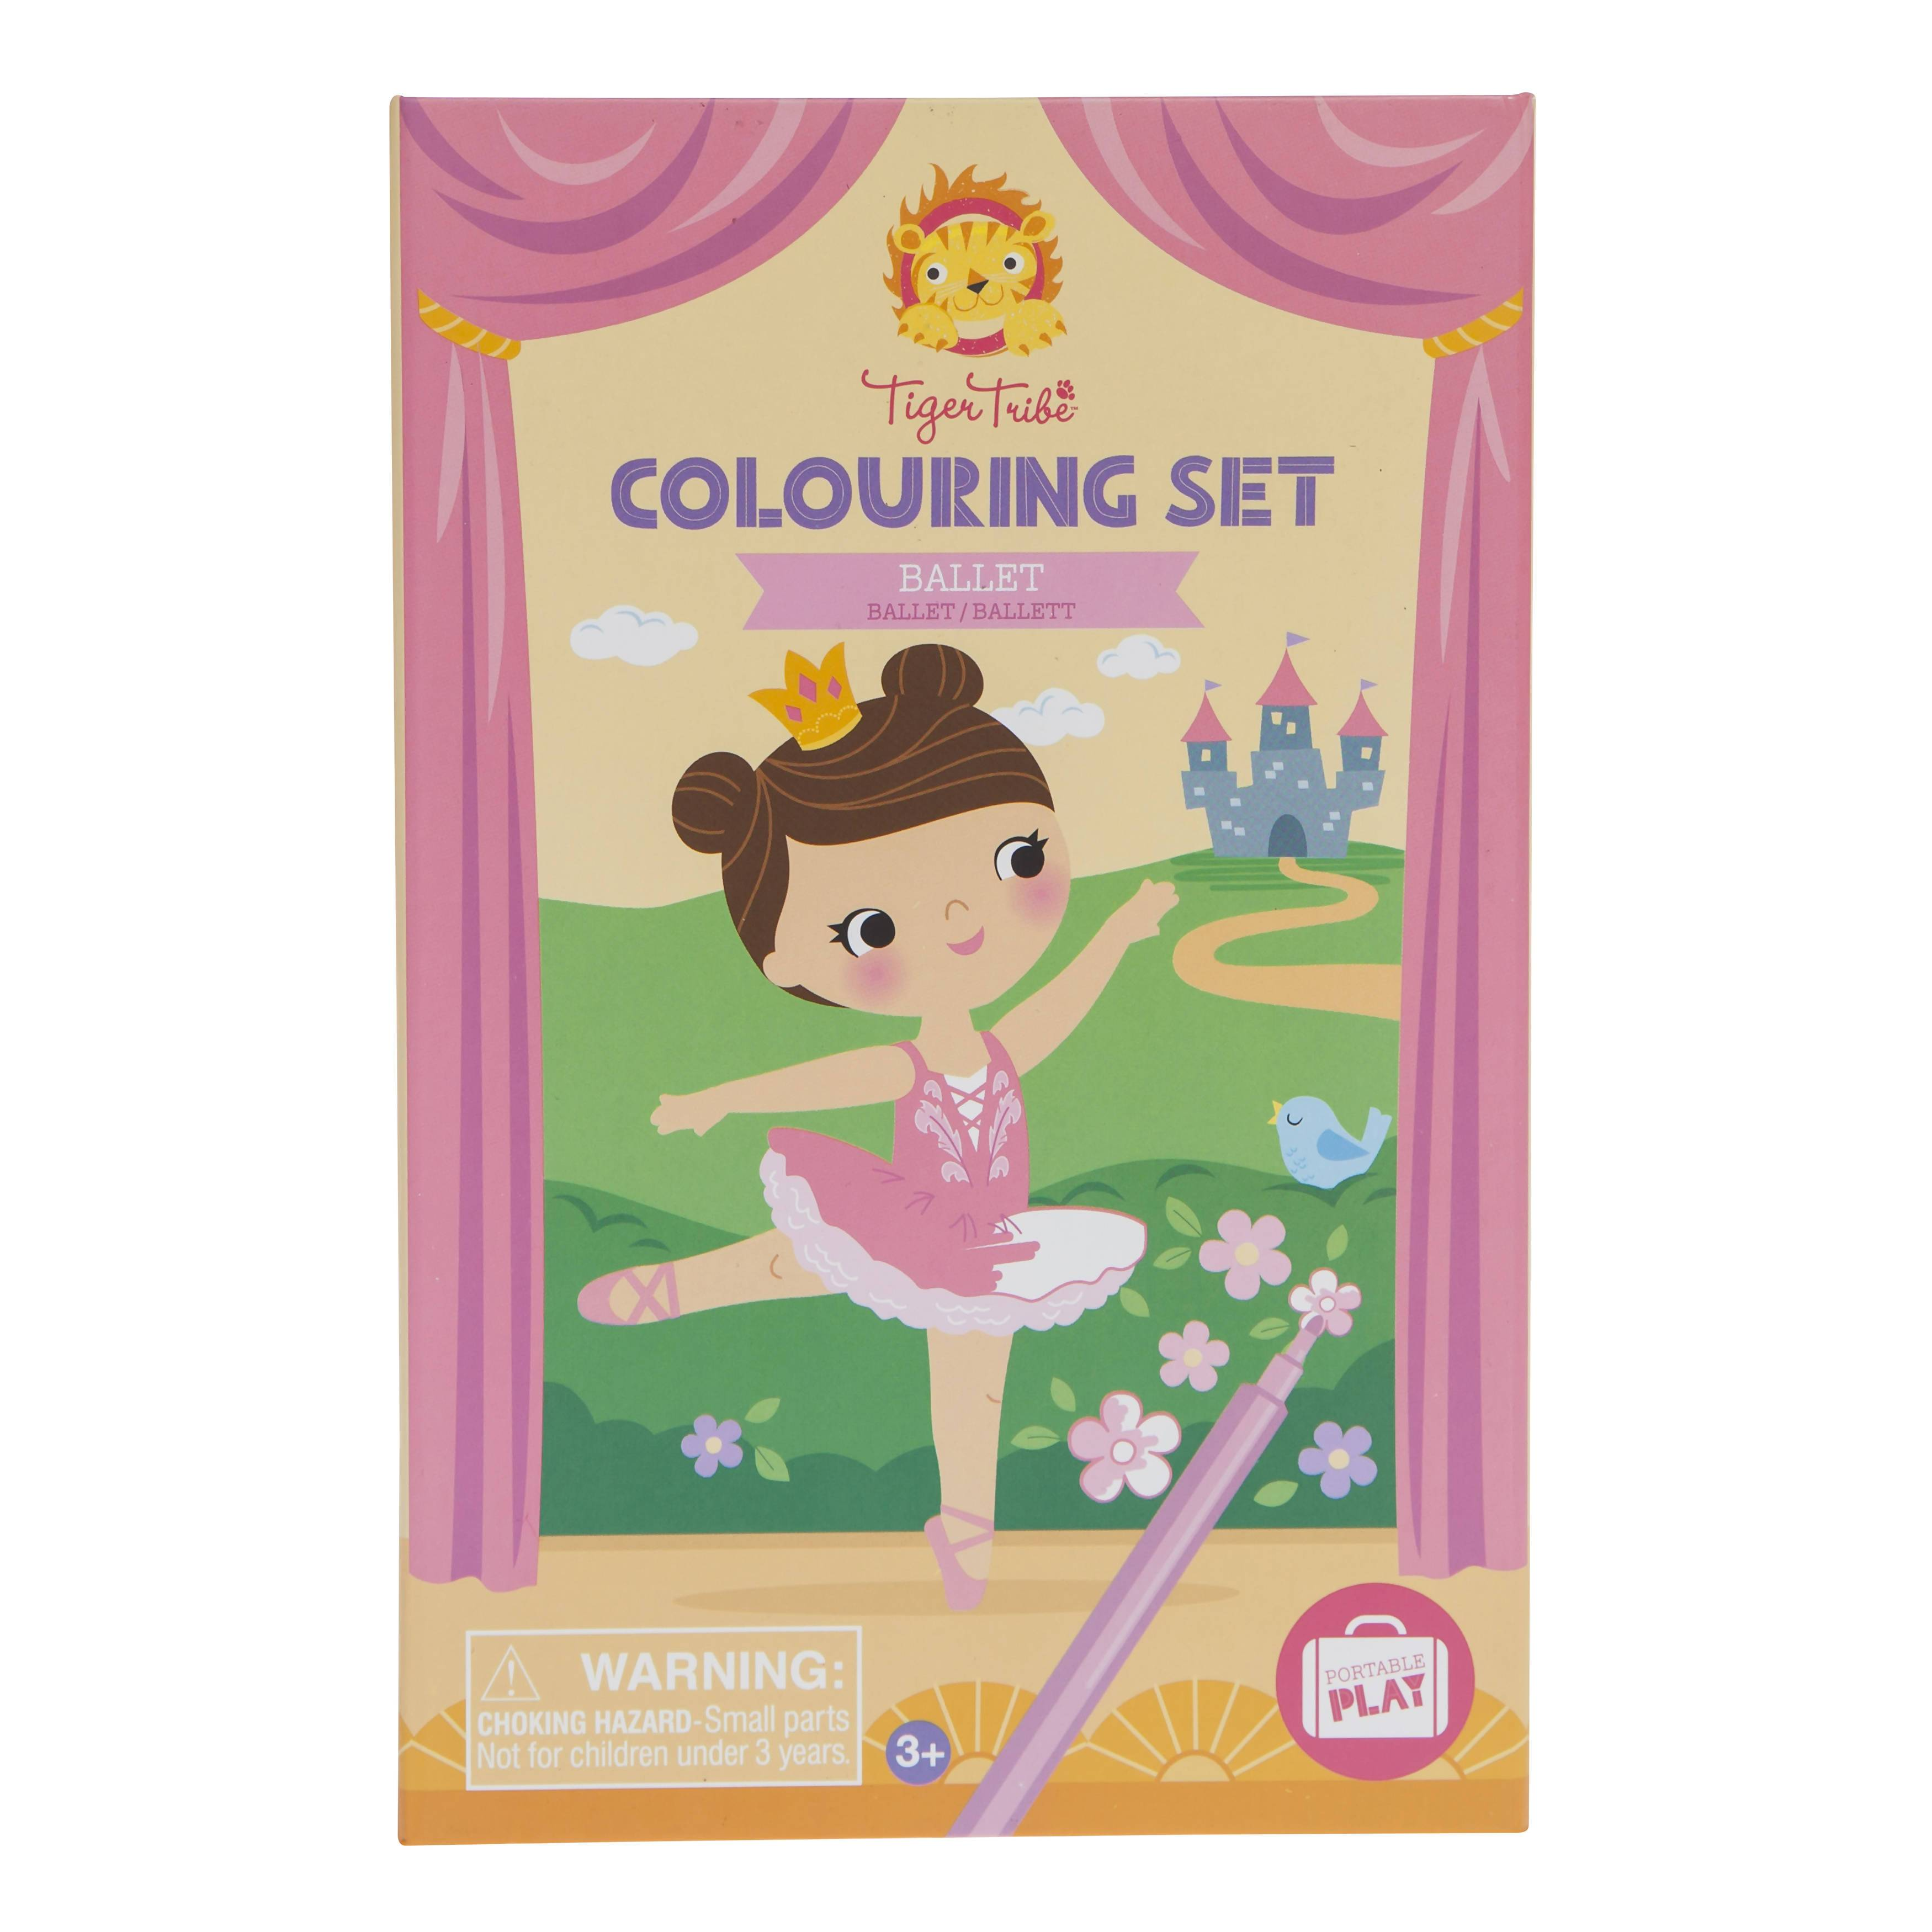 Tiger Tribe Colouring Sets - Ballet - Children Colouring Books - The Children's Showcase - Naiise